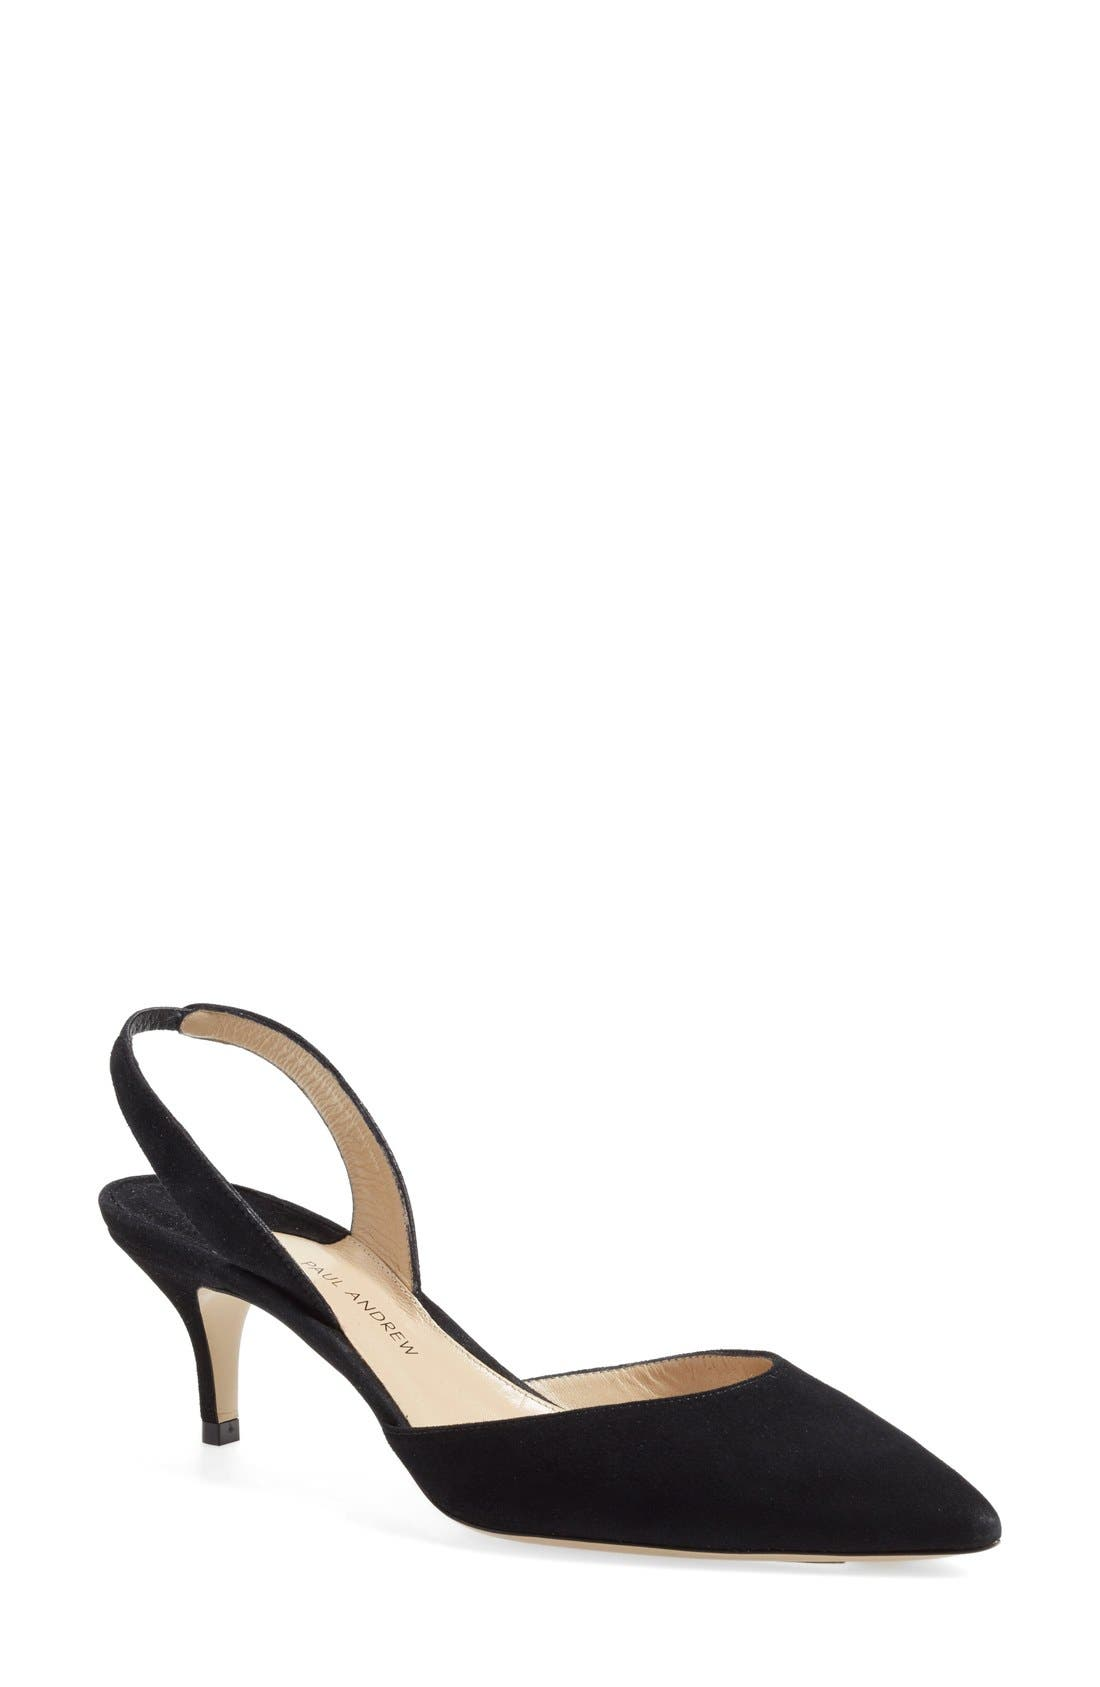 Paul Andrew 'Rhea' Slingback Pump (Women)